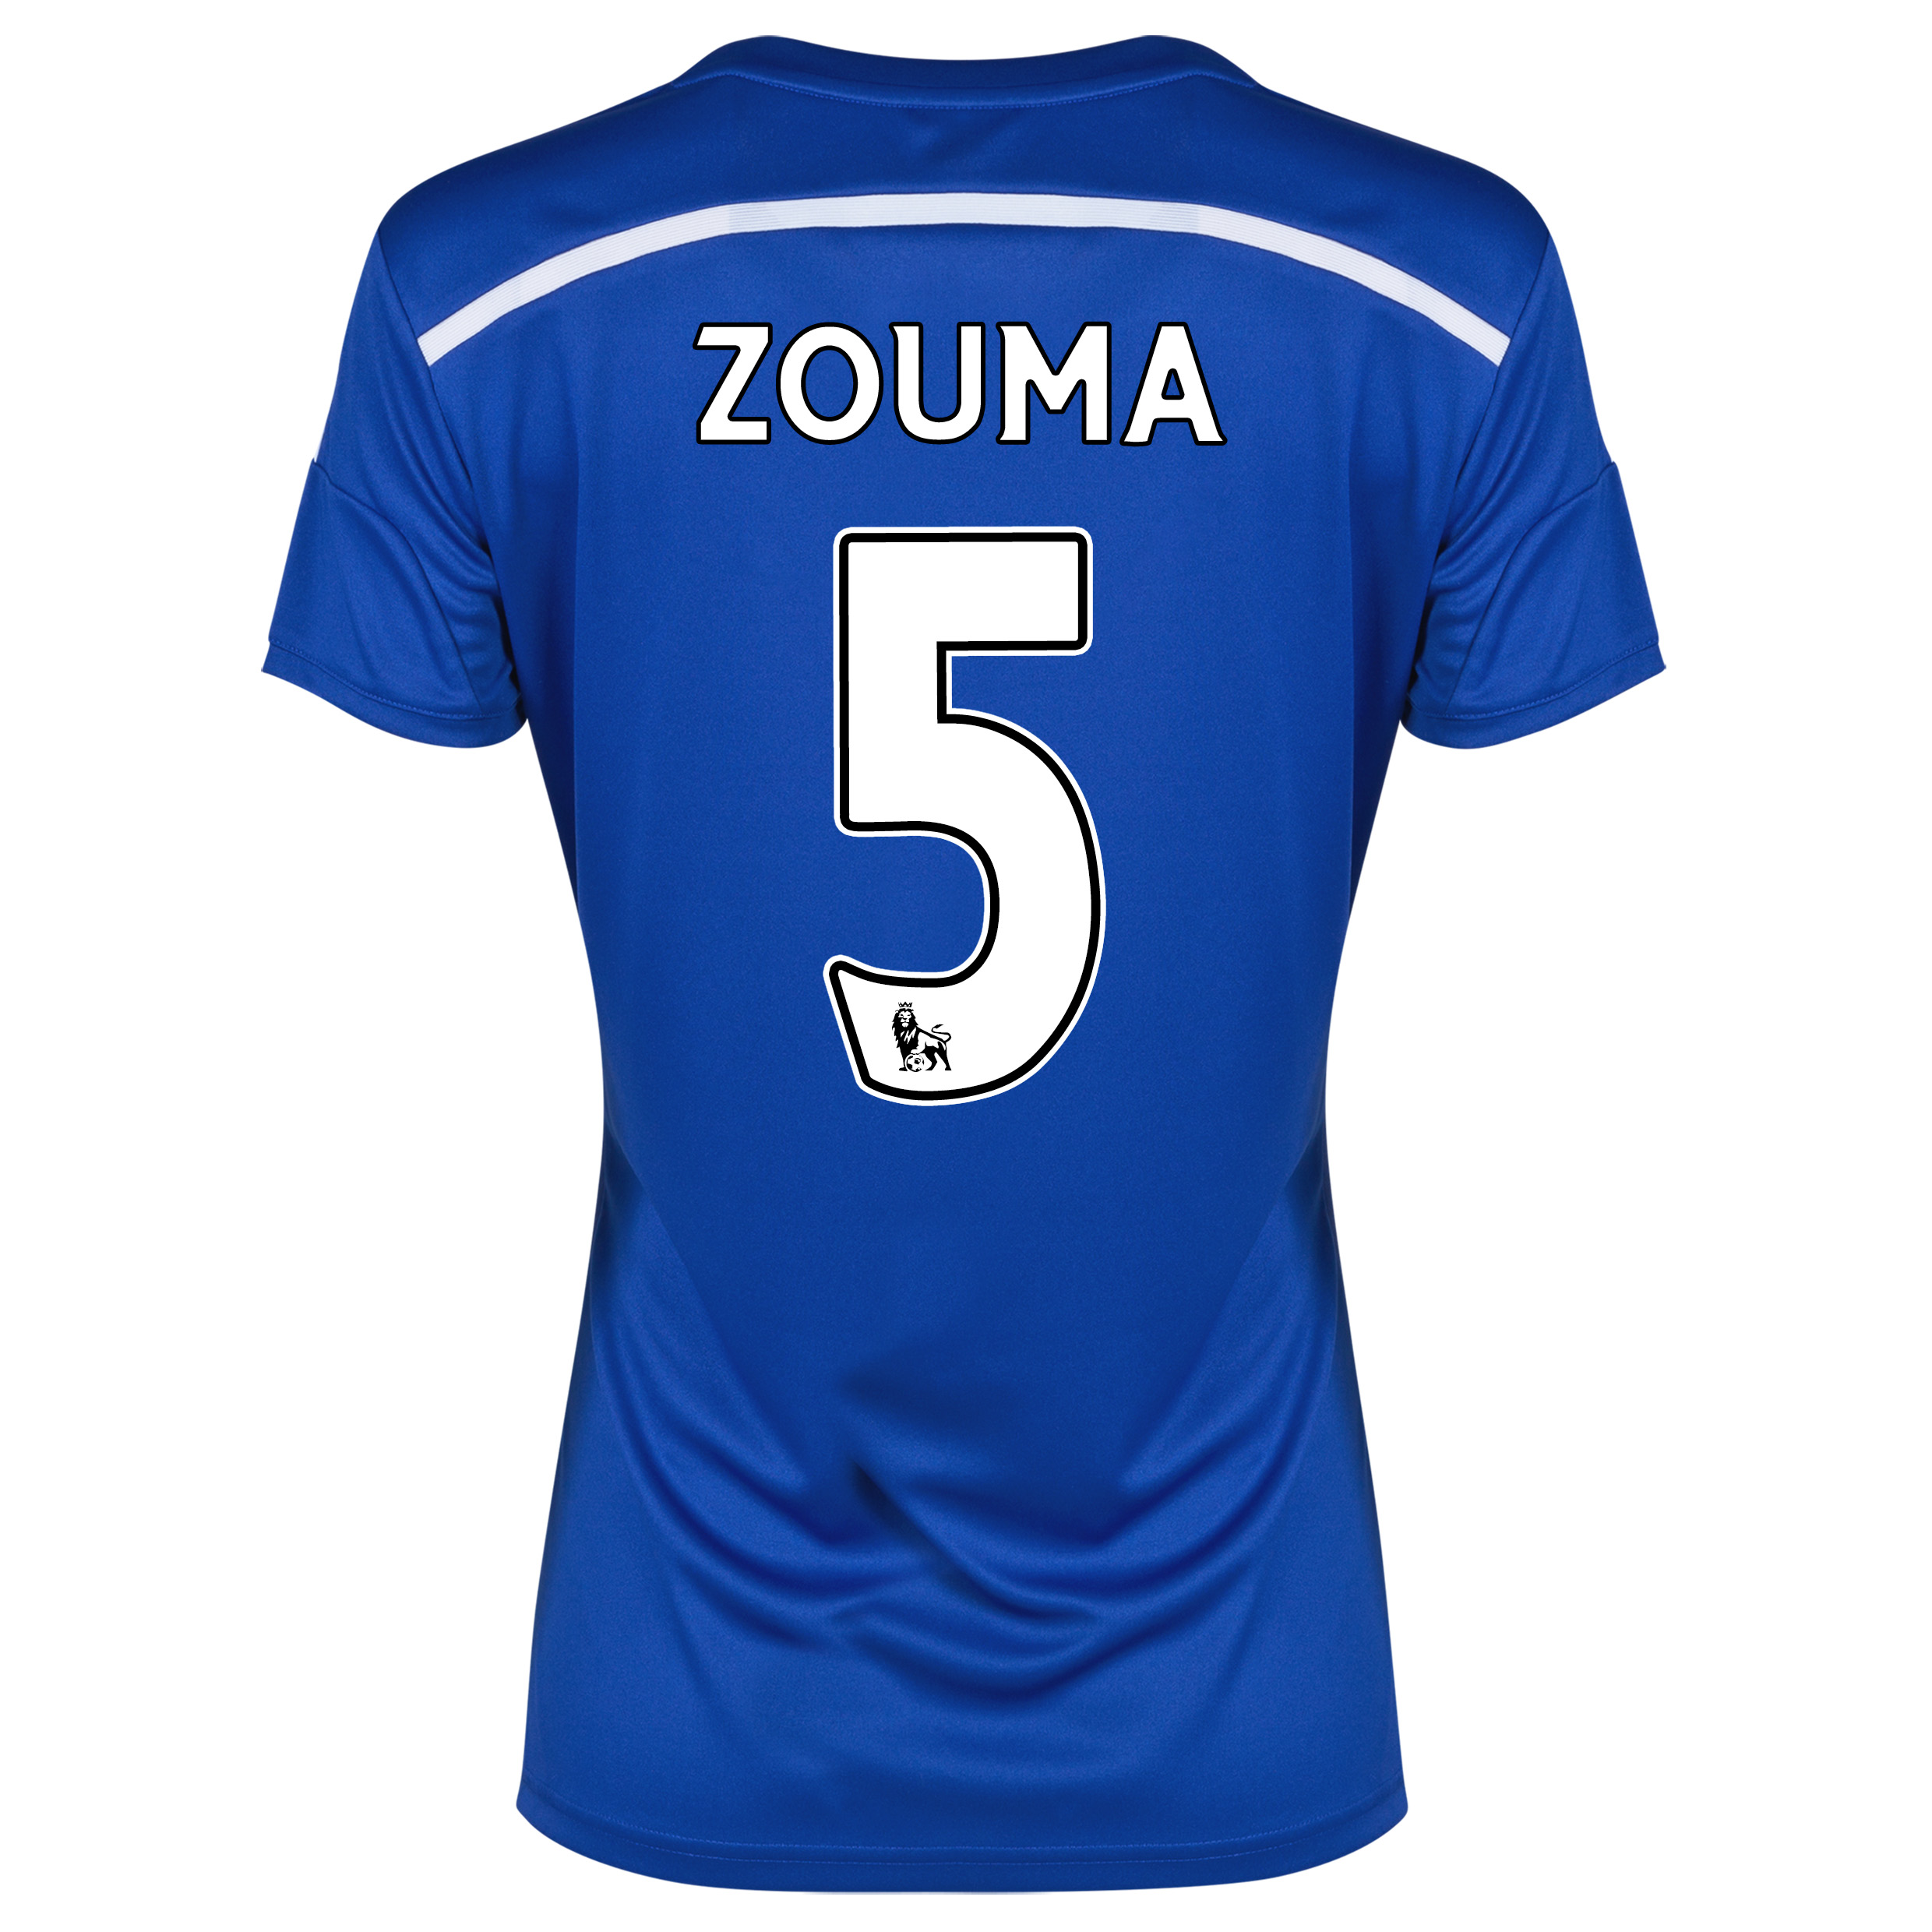 Chelsea Home Shirt 2014/15 - Womens with ZOUMA 5 printing